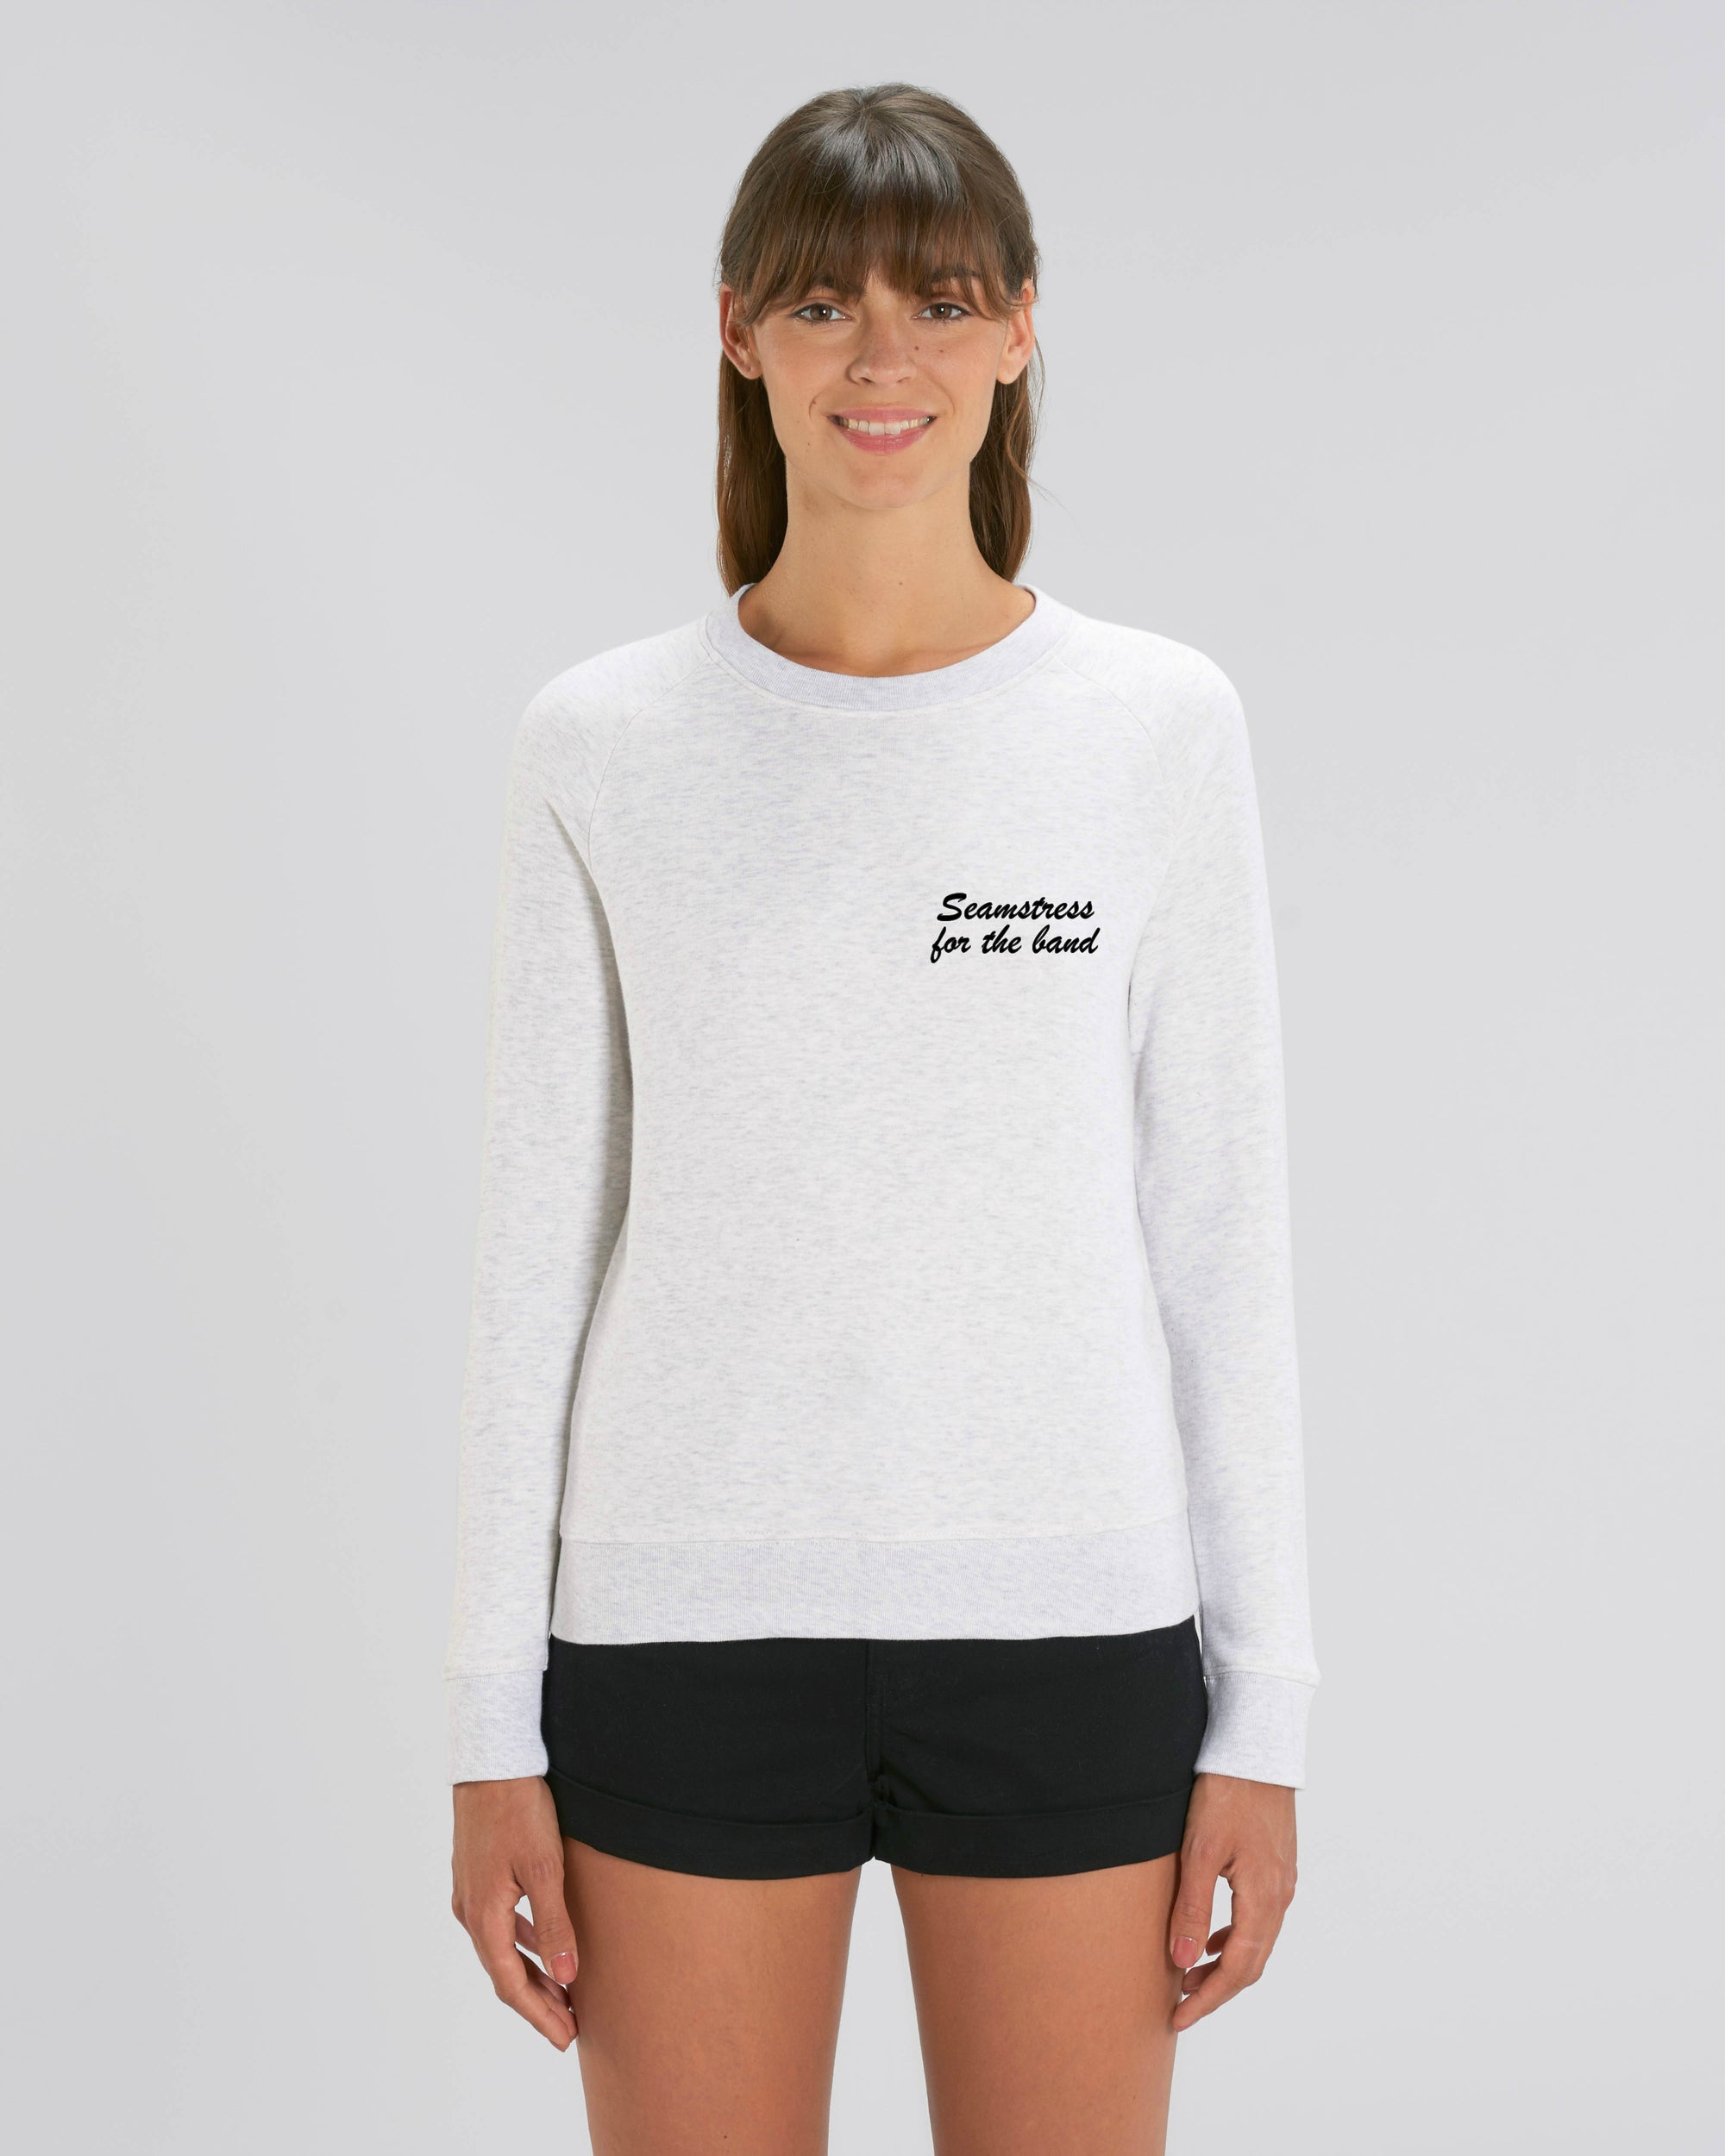 'SEAMSTRESS FOR THE BAND' LEFT CHEST EMBROIDERED WOMEN'S ORGANIC COTTON SWEATSHIRT